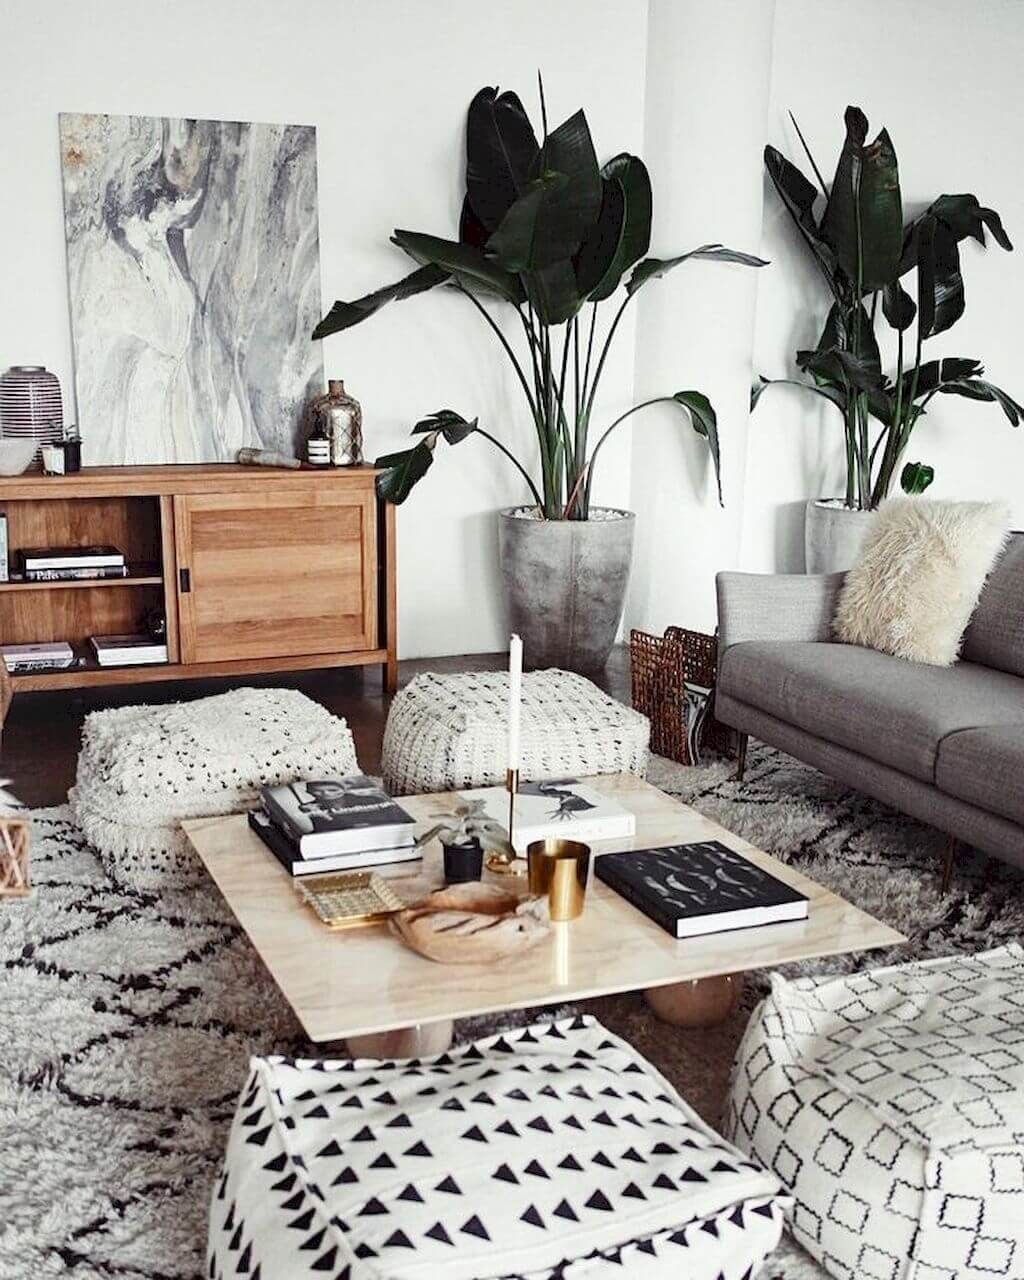 30 Modern Bohemian Interior Design Ideas With Images Small